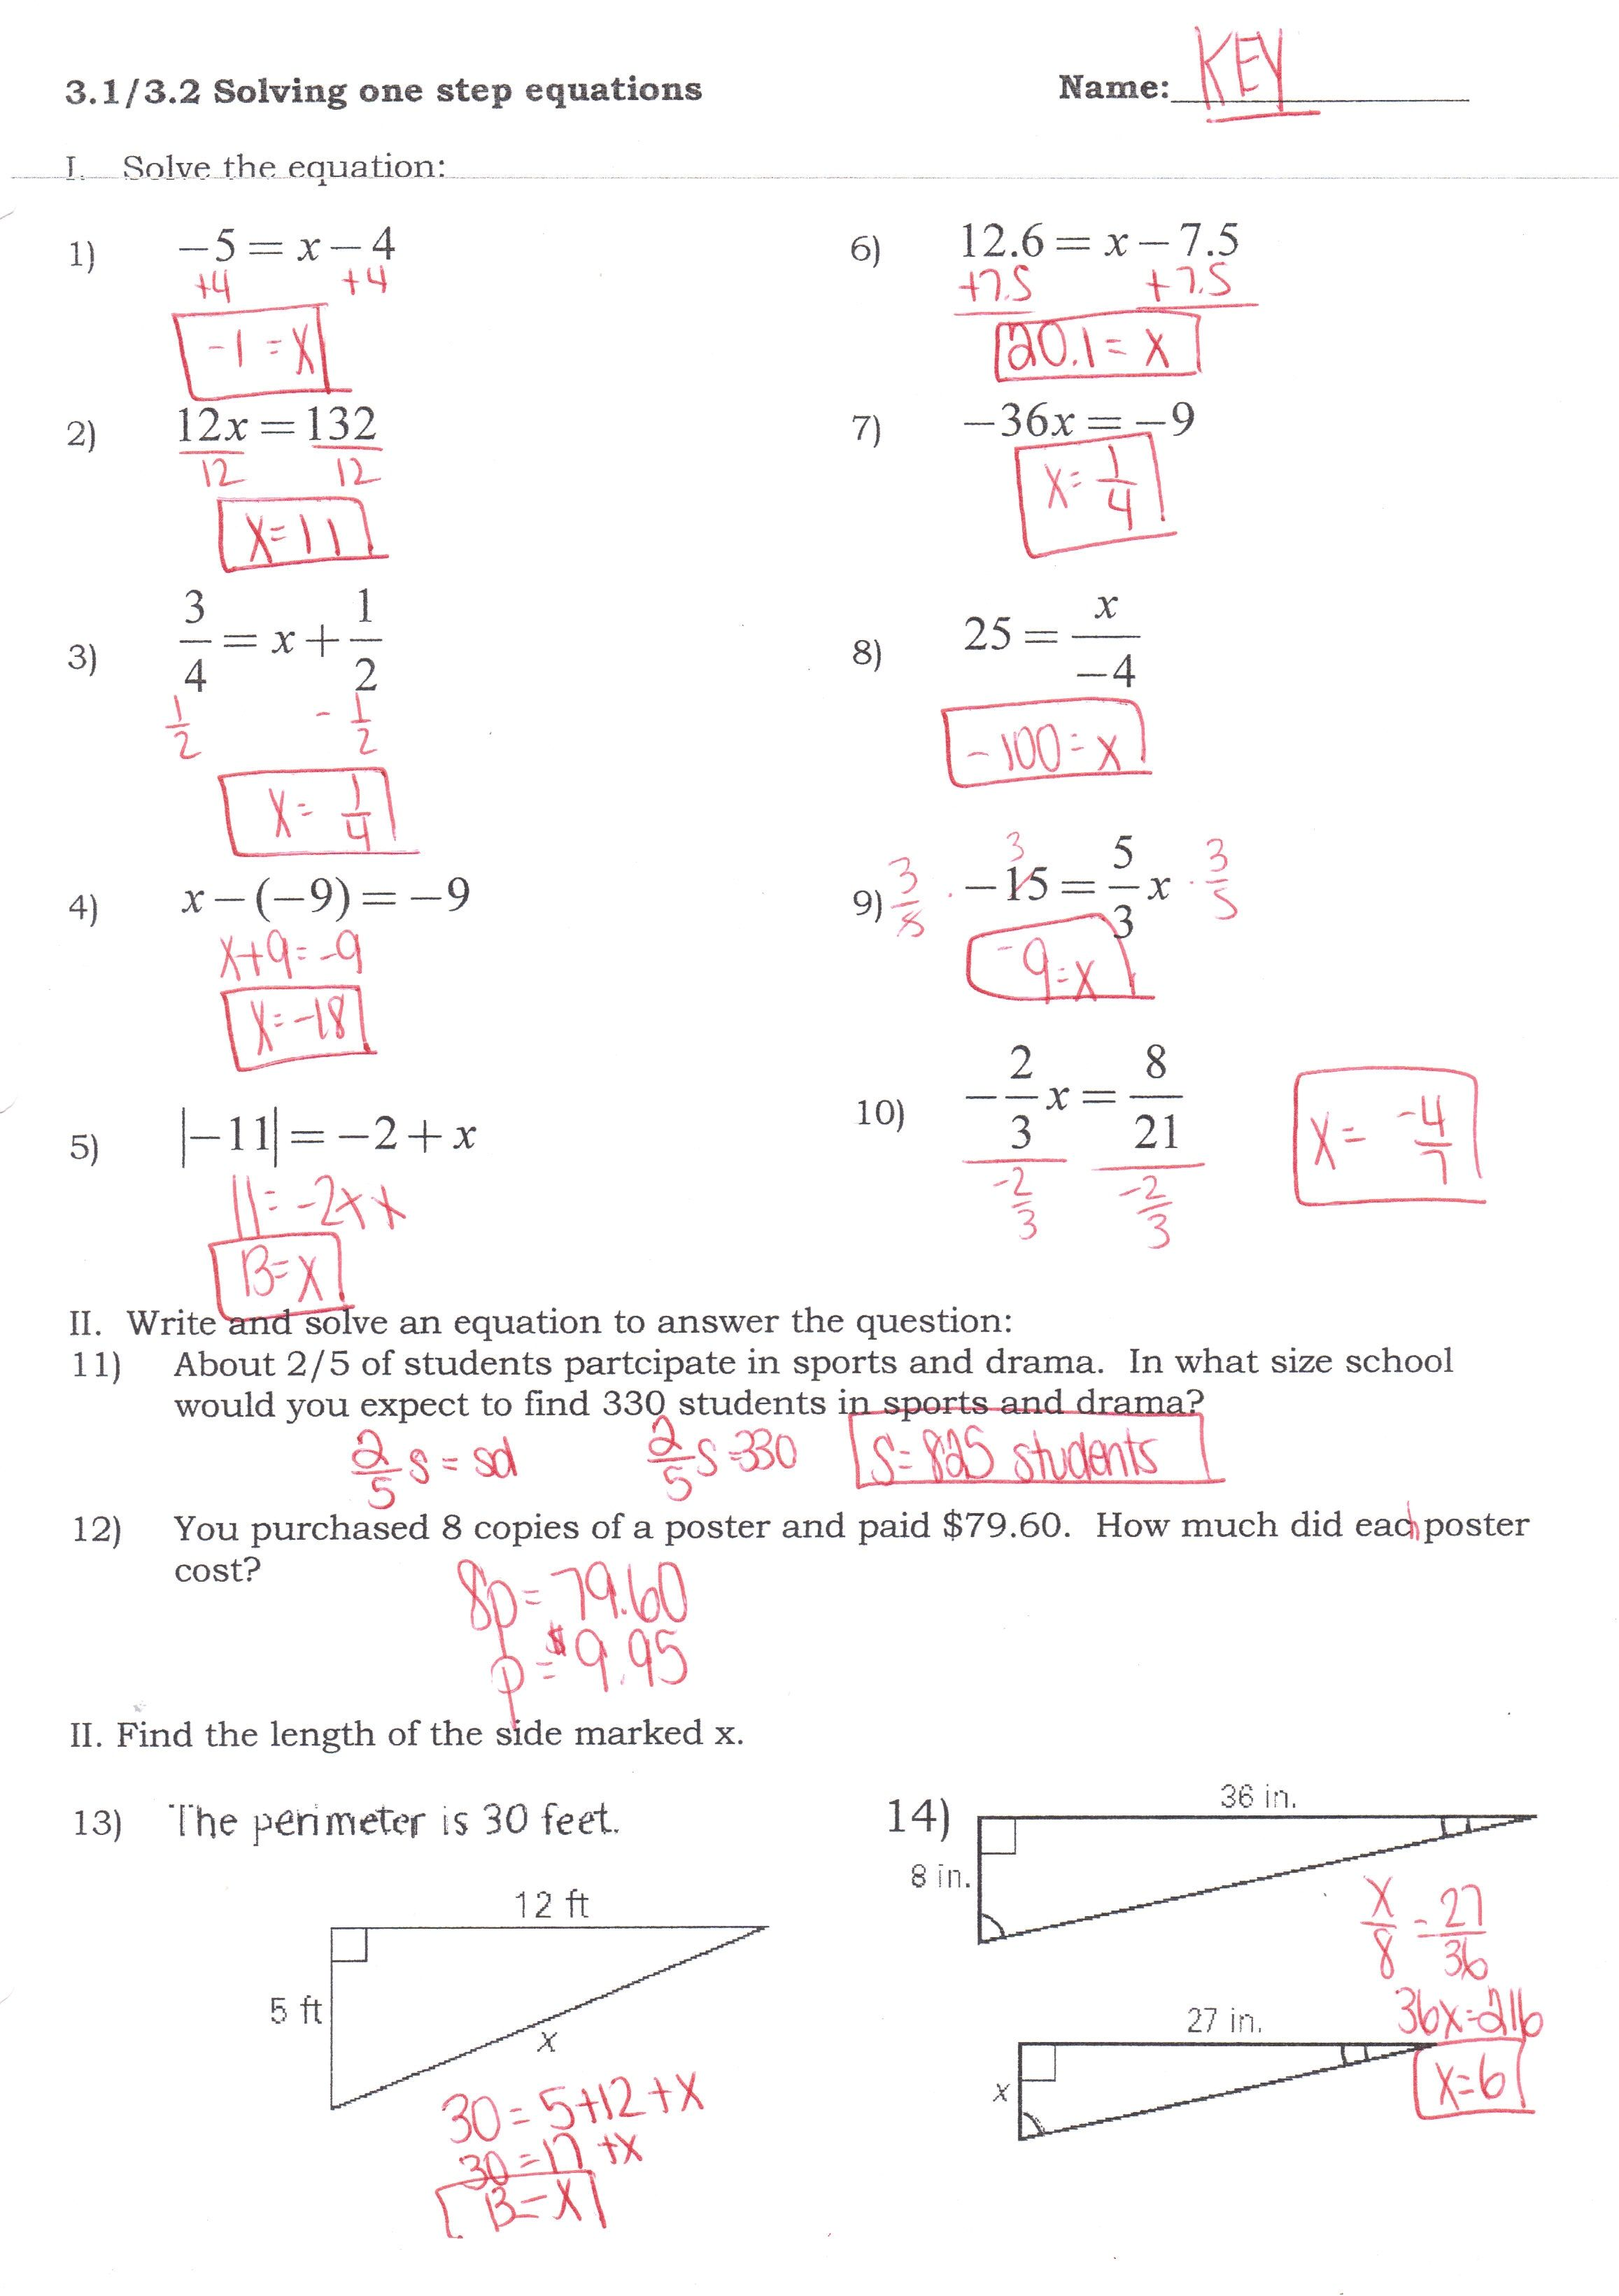 43 Simple Absolute Value Equations Worksheet Design Ideas